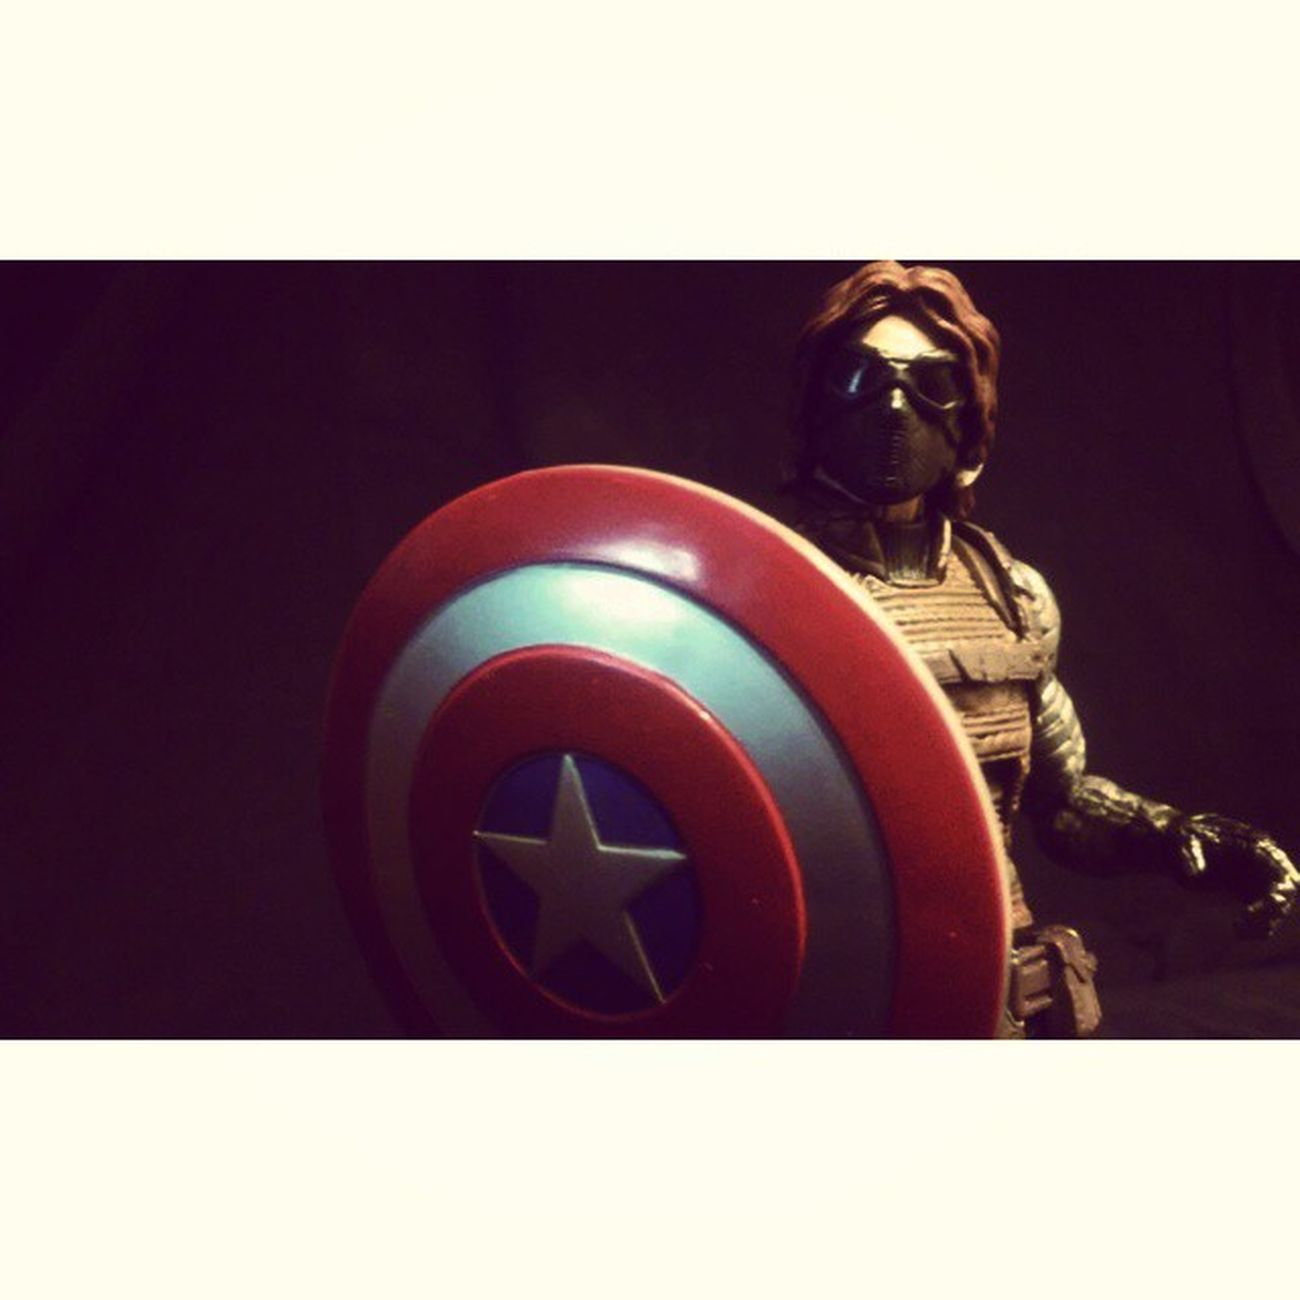 """Price of freedom is high,but thats a price im willing to pay"" WinterSoldier Sebastainstan Buckybarns Bucky Captainmerica Marvel Marvellengends Mcu Figureoftheday Collecting Figurecollecting Havingfun Comics Toys Disney Steverodgers Sheild Captainmericathewintersoldier Hasbro Figures"